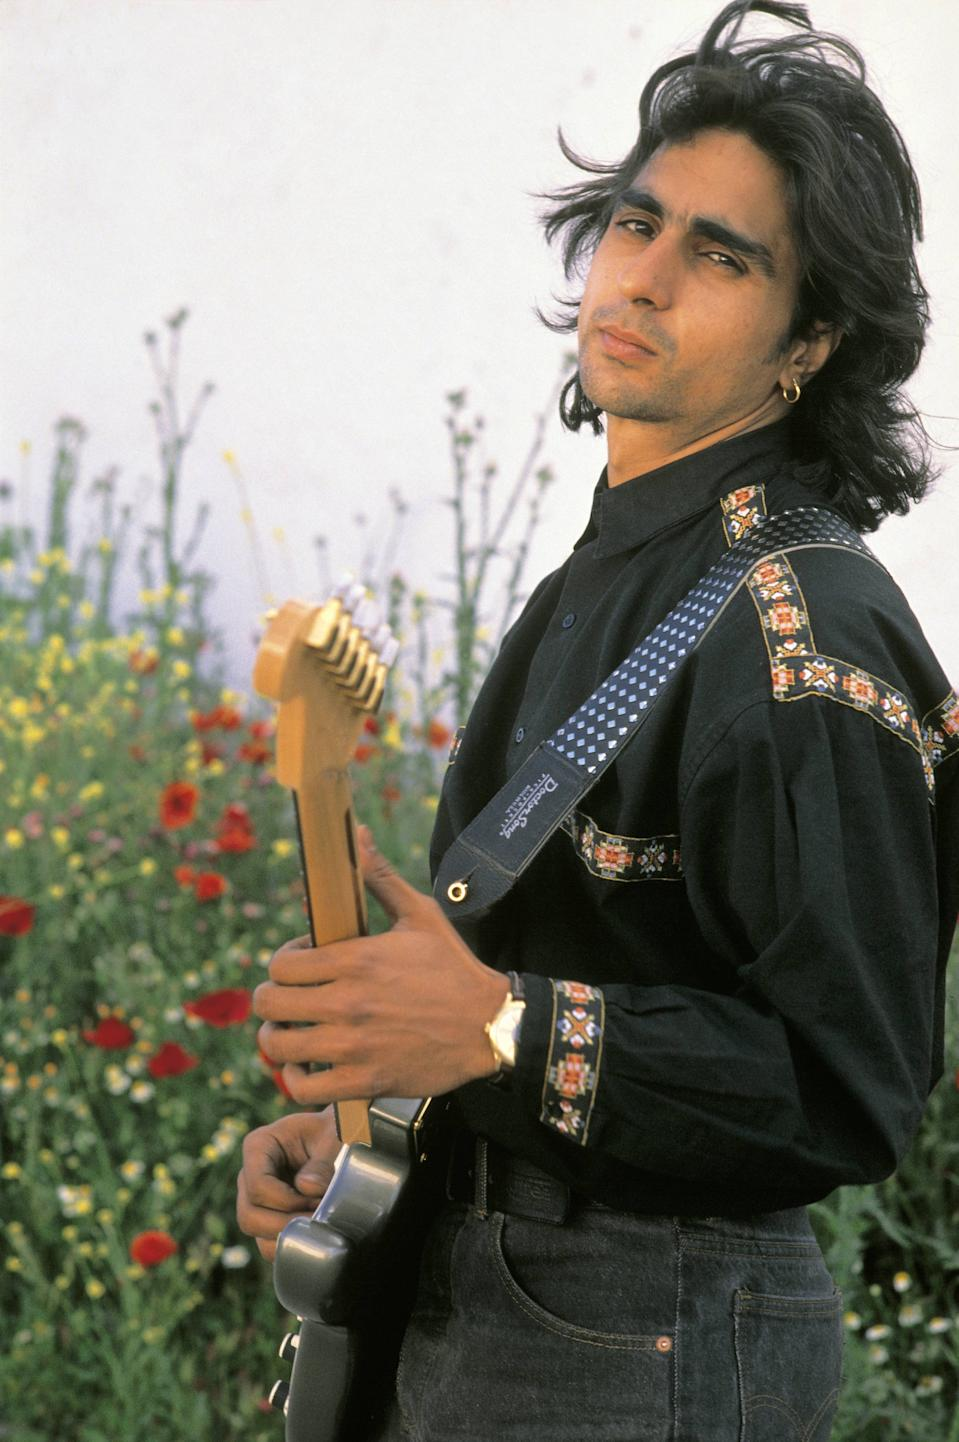 Antonio Flores, singer With an electric guitar  (Photo by Pepe Franco/Cover/Getty Images)